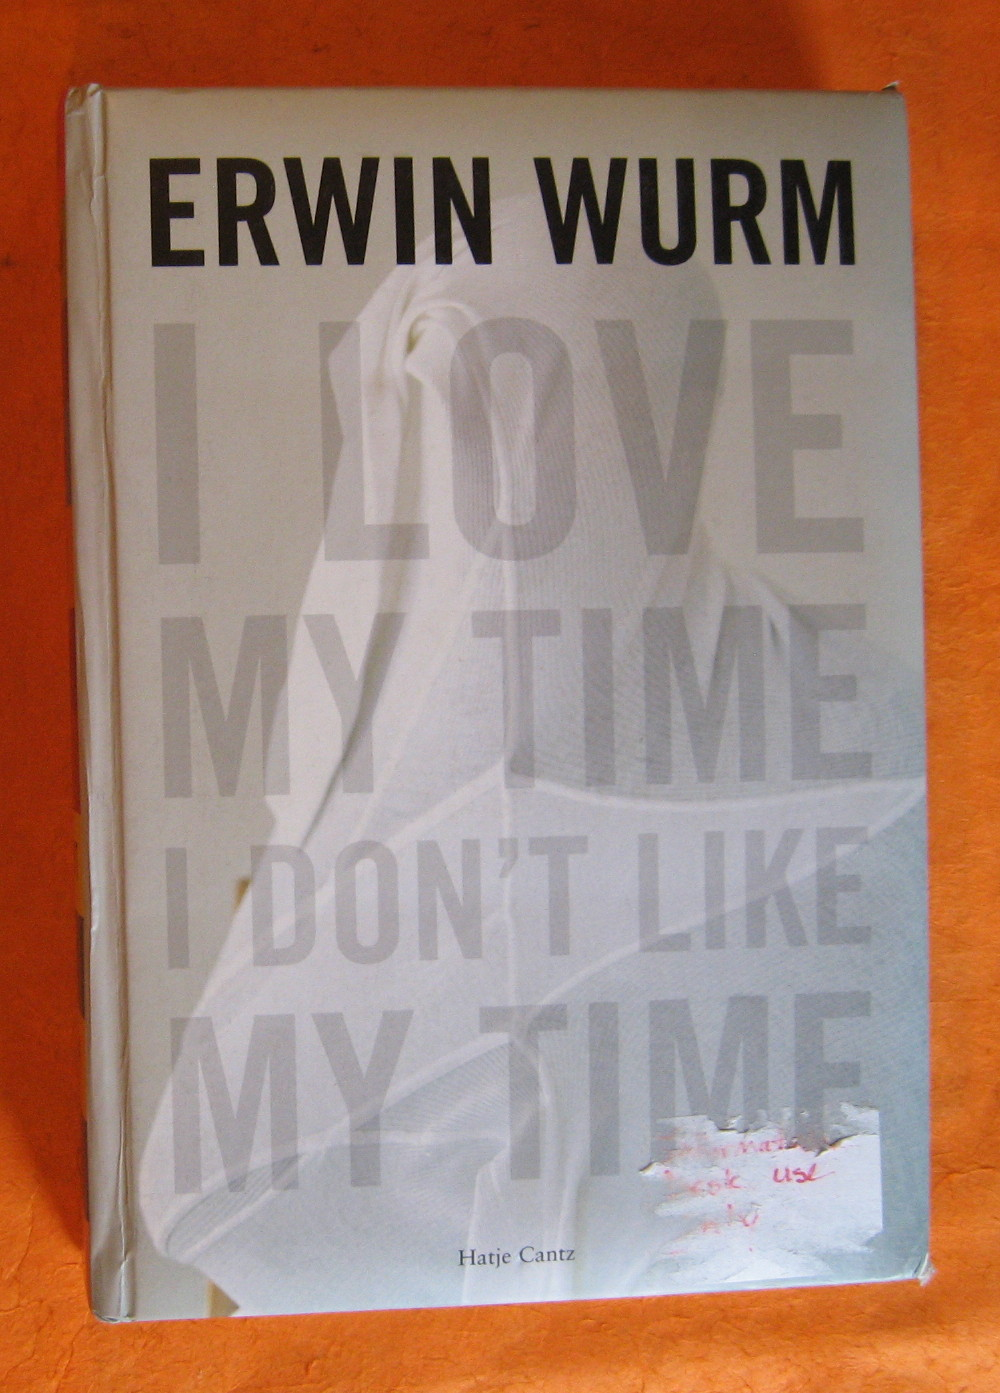 Erwin Wurm: I Love My Time, I Don't Like My Time, Barlow, Geraldine; de Guzman, Rene